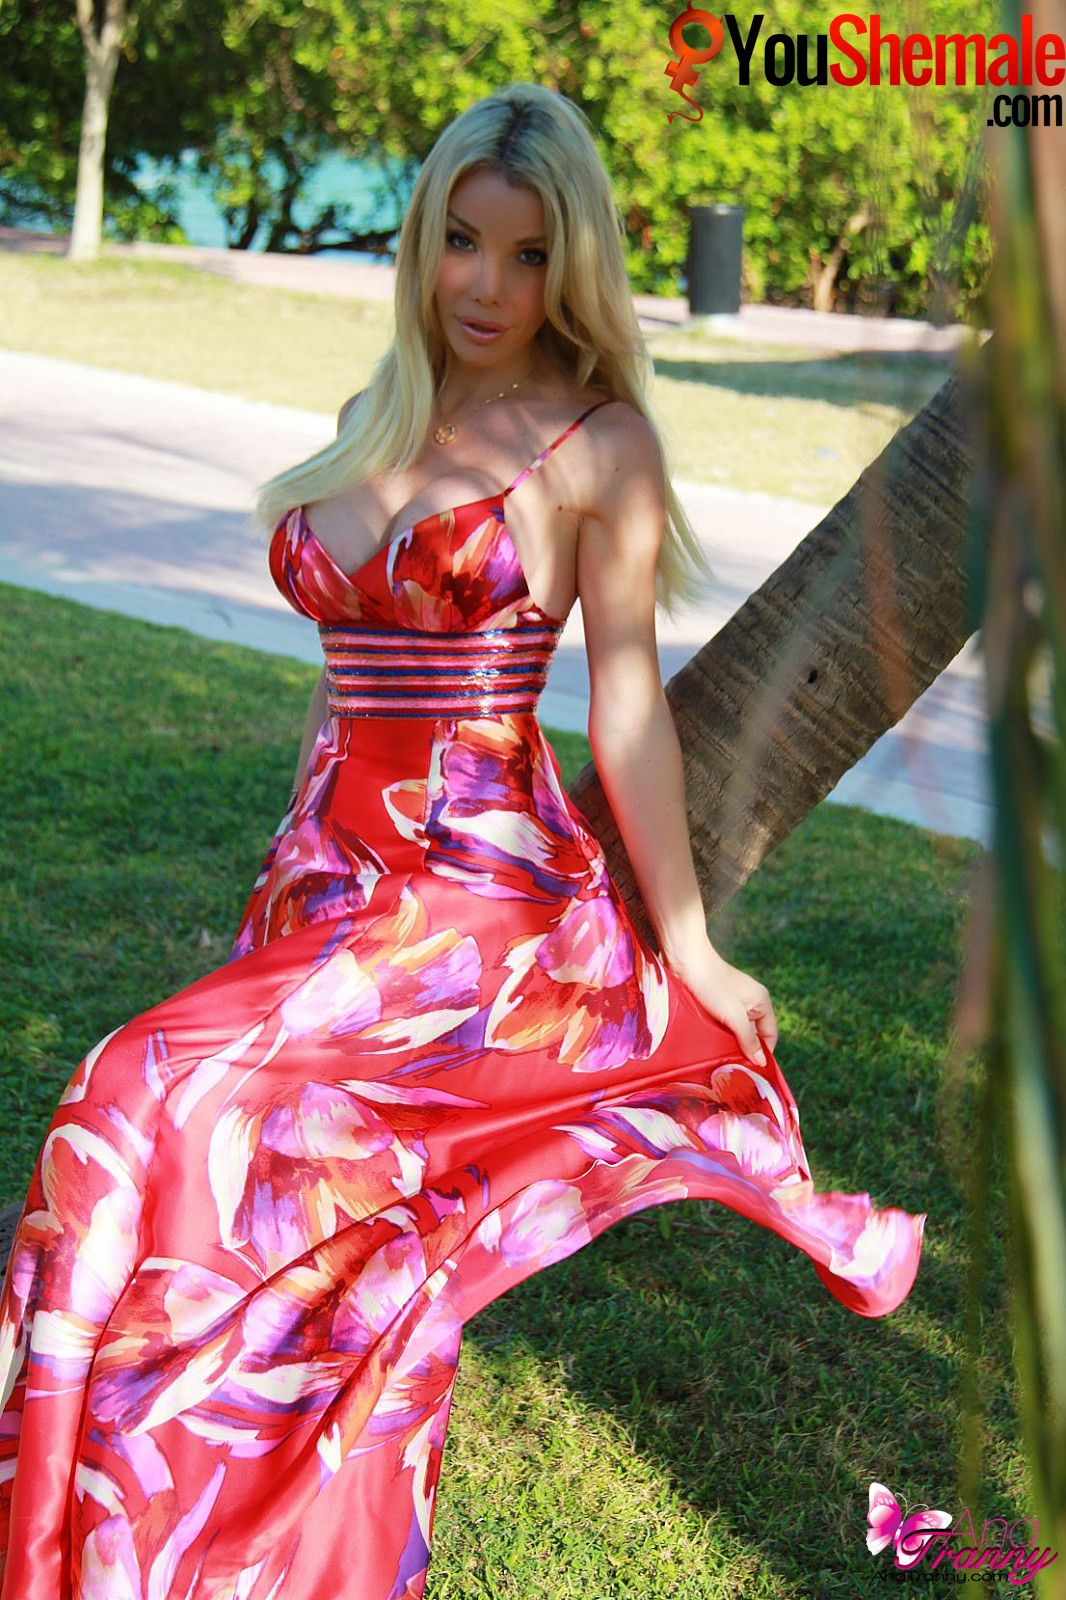 Leggy Beauty Meggie Takes off Her Bright Red Dress and